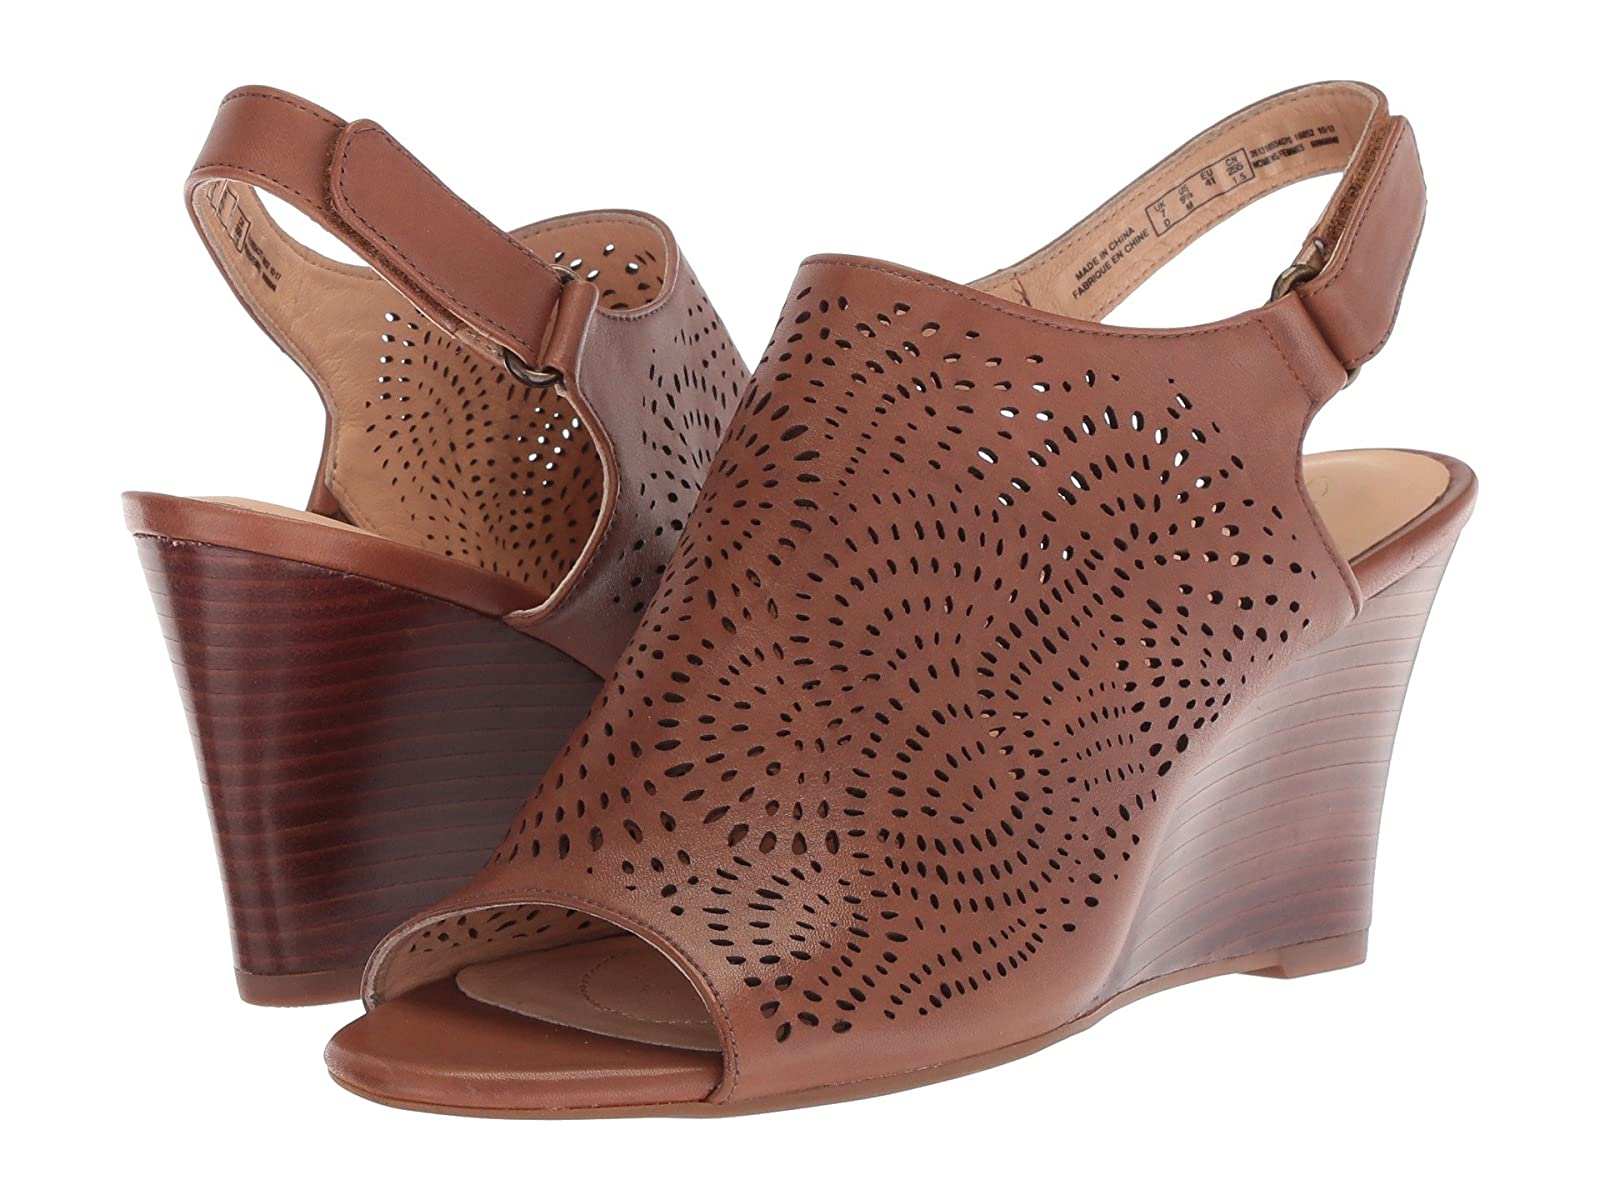 Clarks Raven DawnCheap and distinctive eye-catching shoes